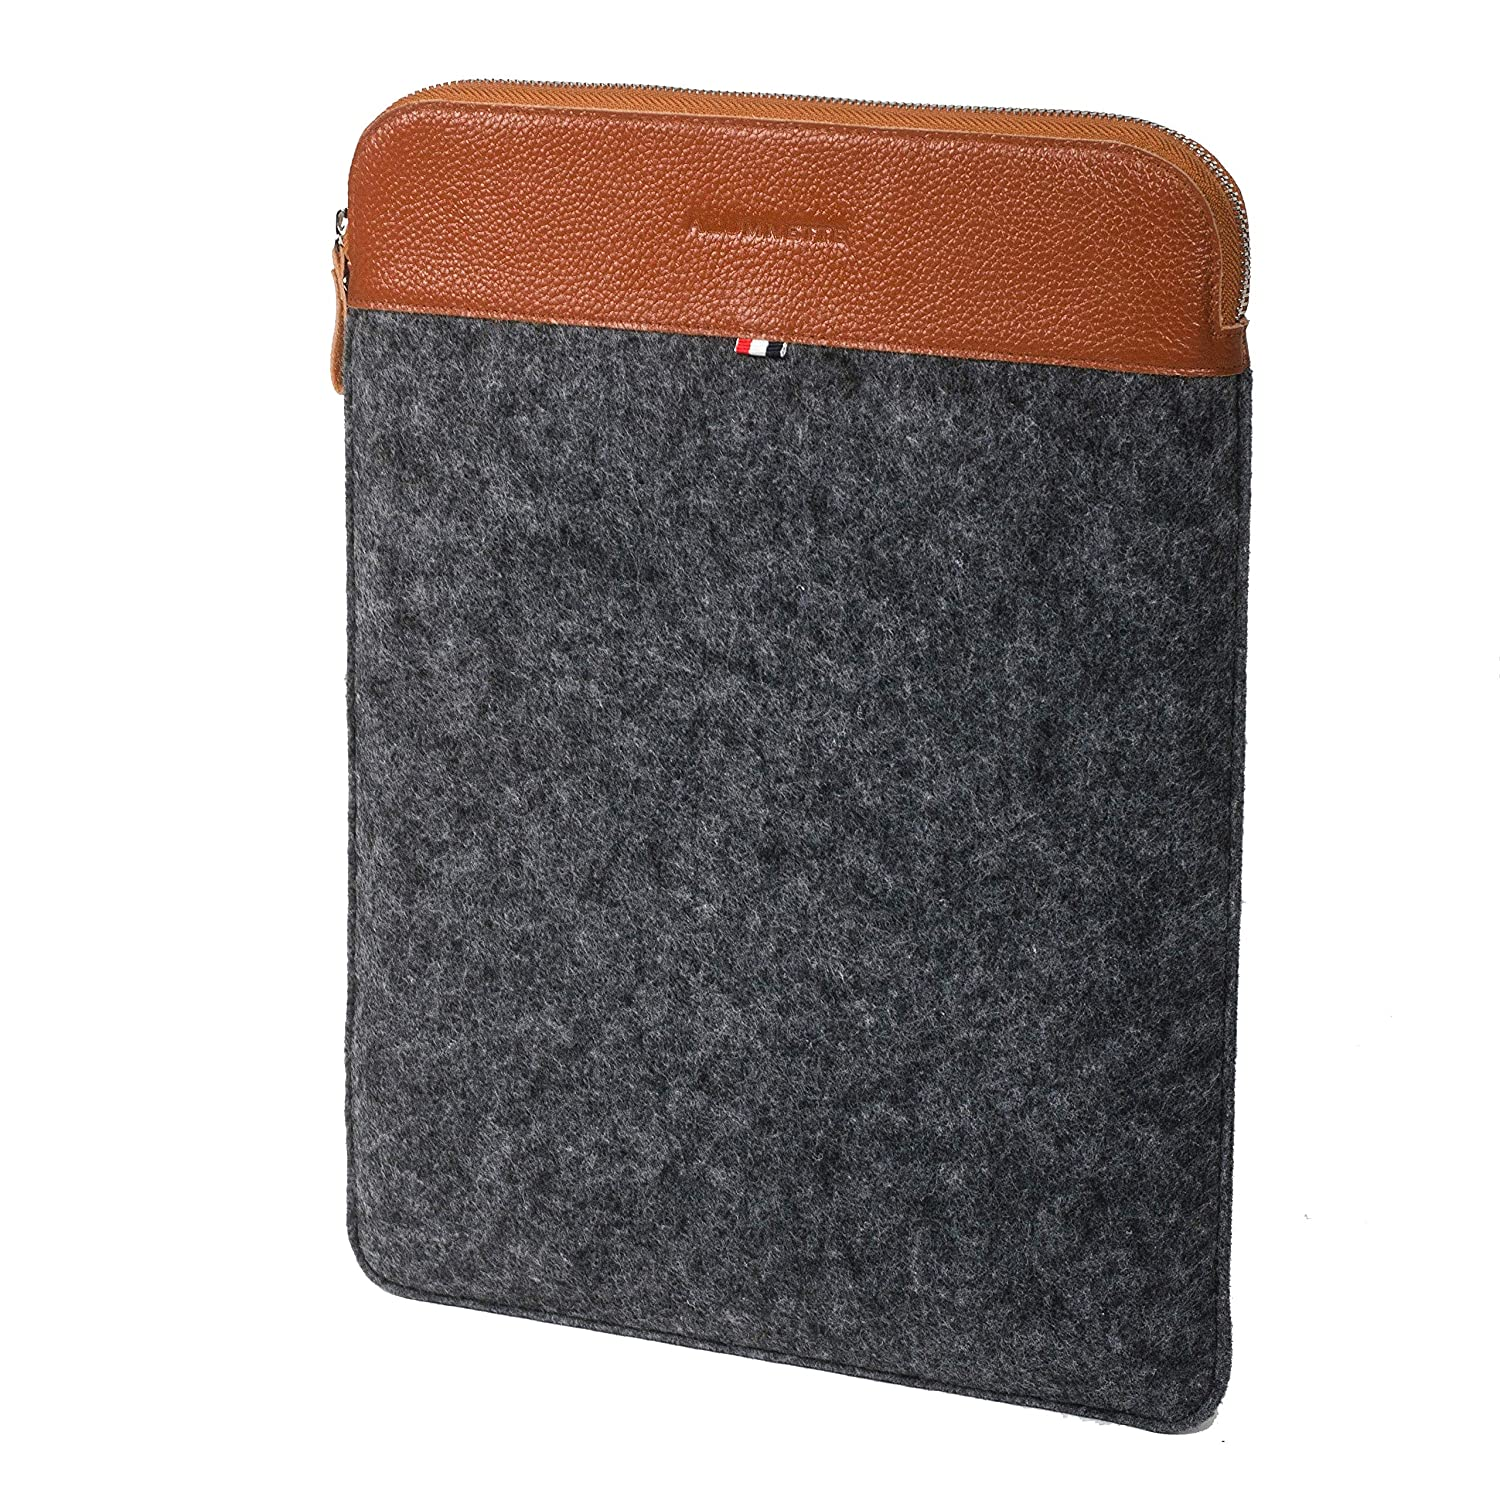 Alumnette Handcrafted (Genuine Leather & Felt) Laptop 13.3 Inch Laptop Felt) Sleeve/Case Fits Perfectly 13